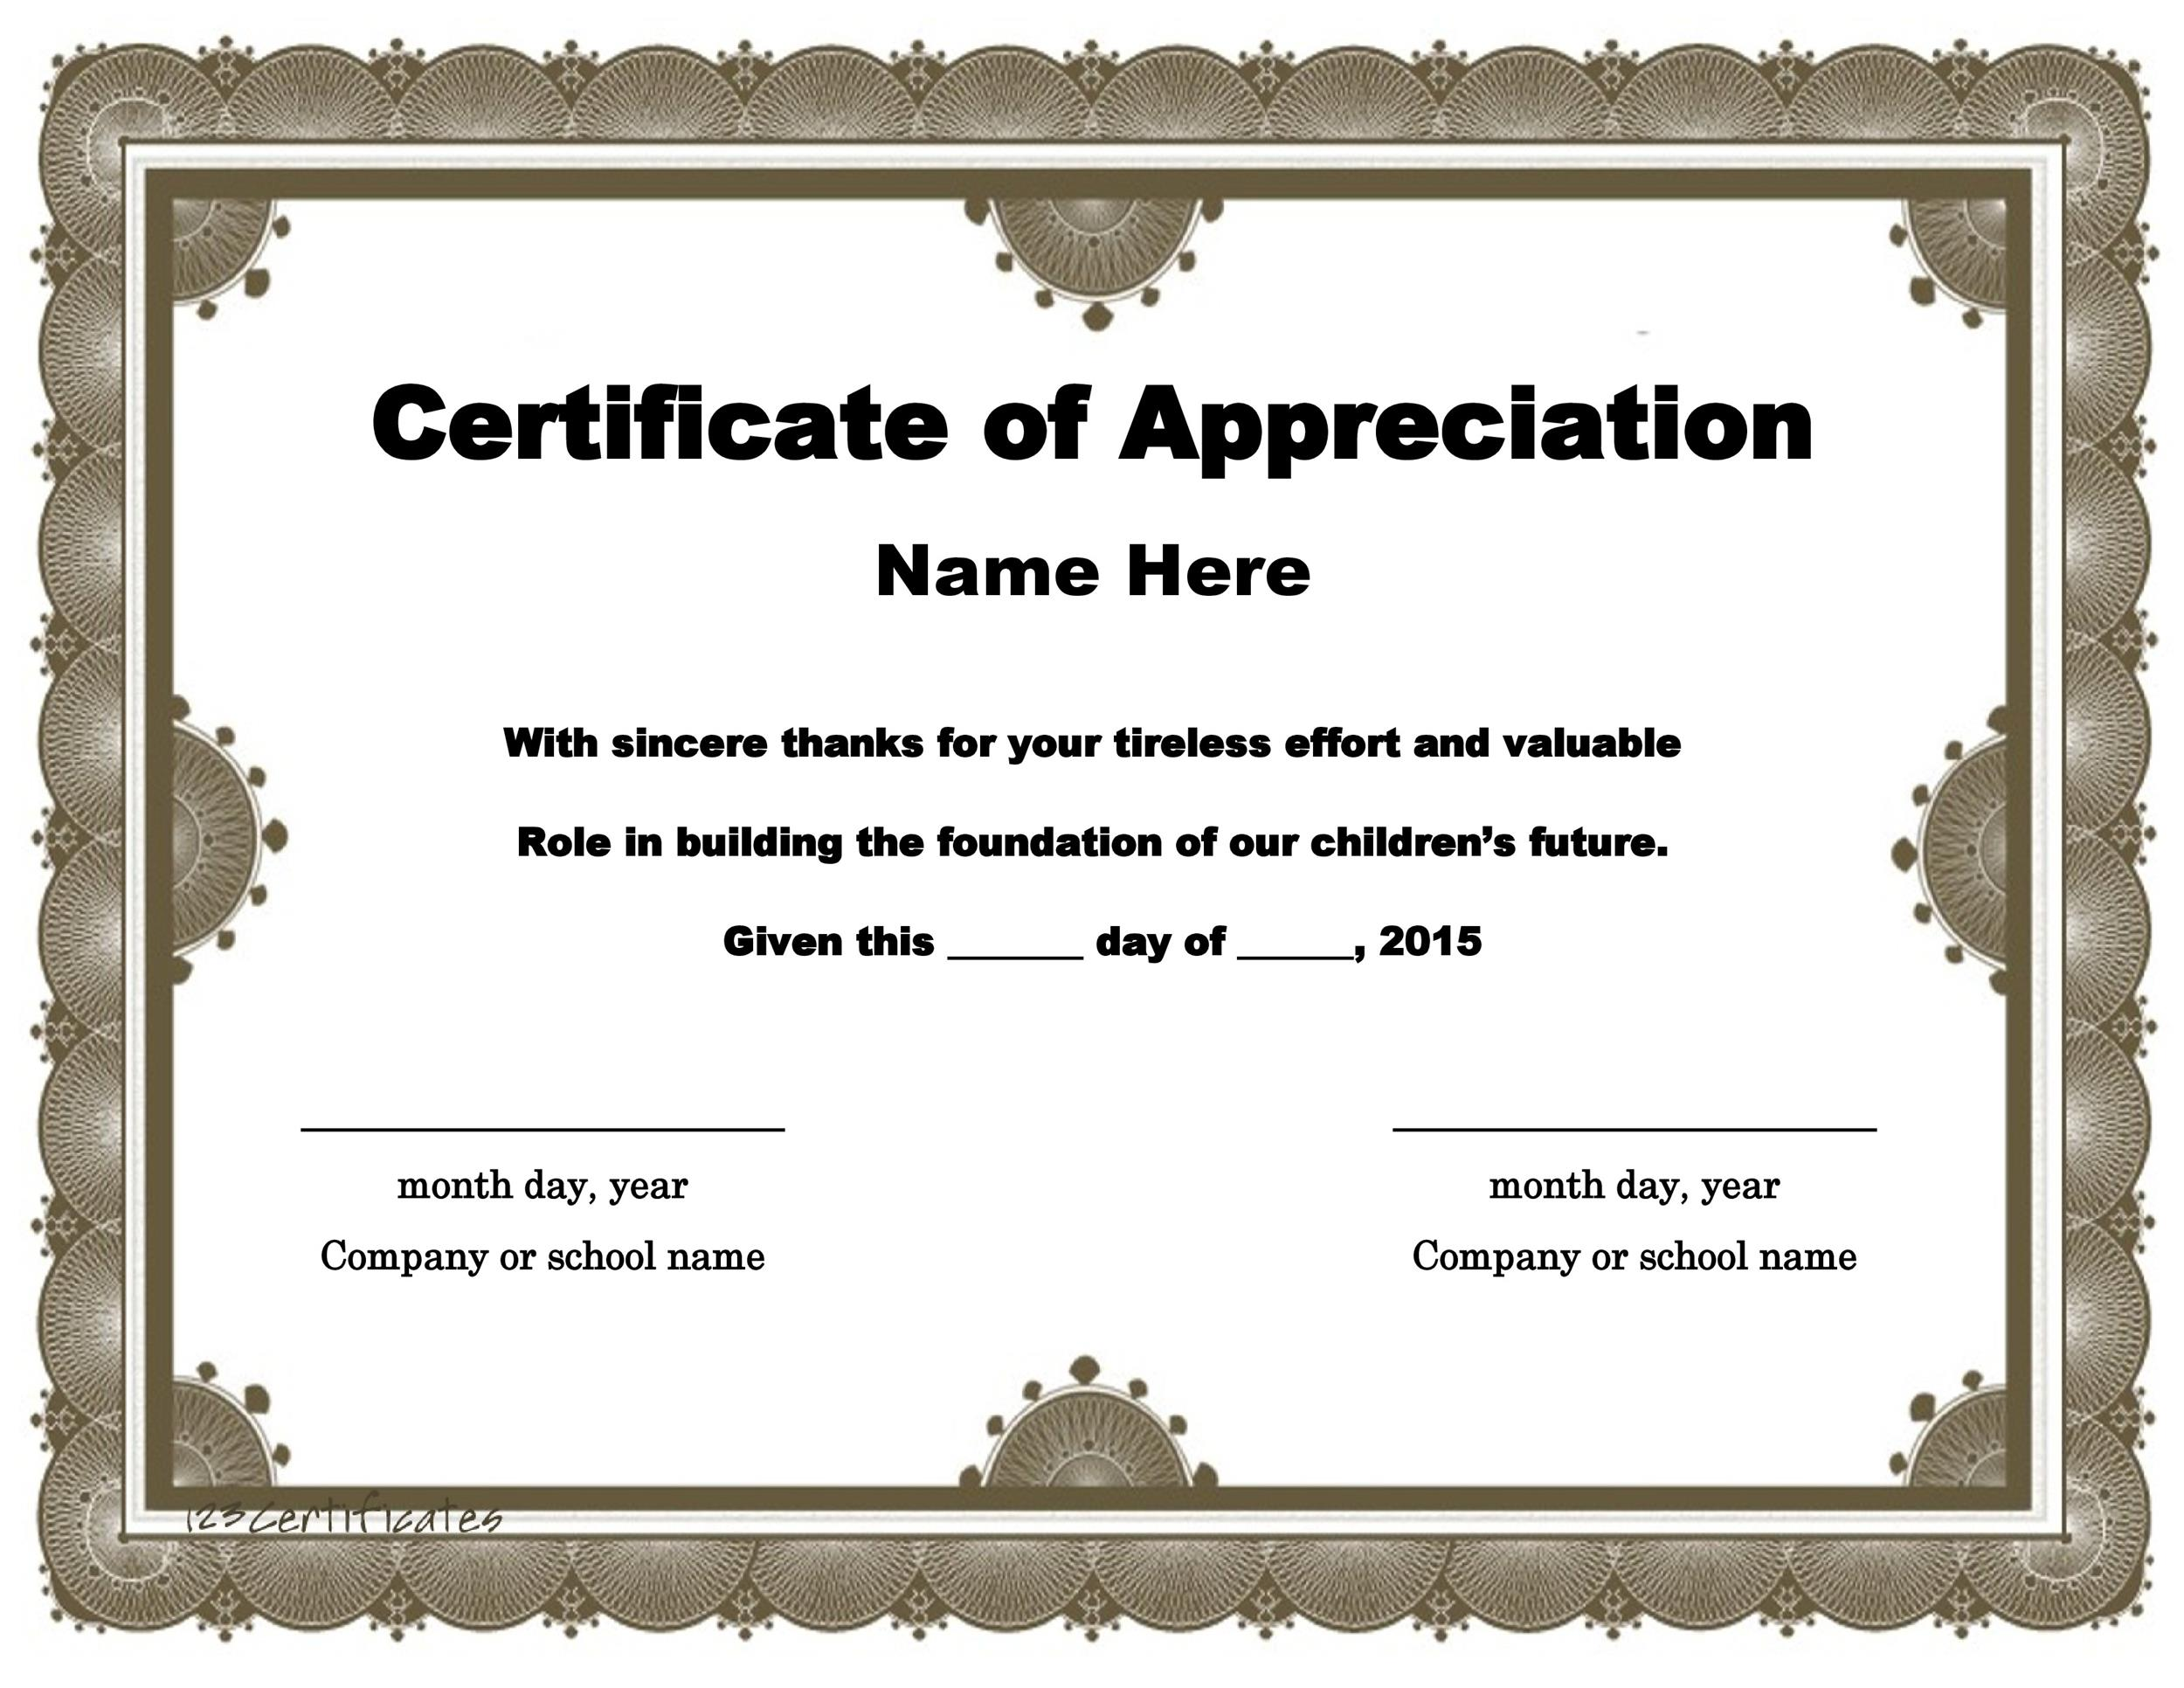 30 free certificate of appreciation templates and letters printable certificate of appreciation 03 yelopaper Choice Image